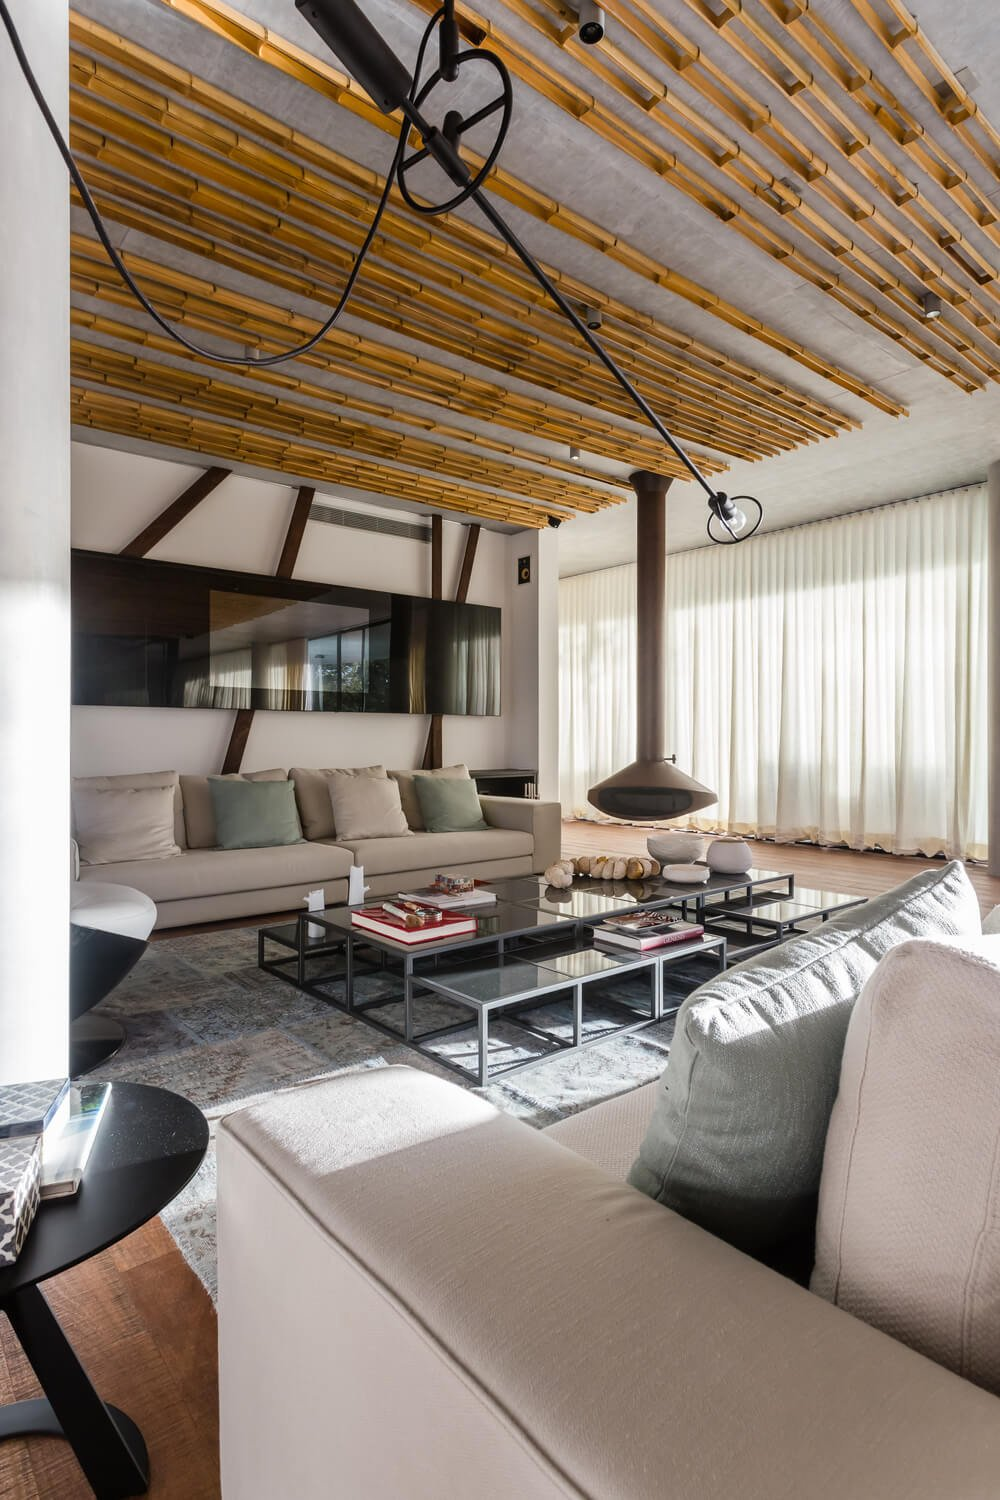 This is a full view of the metal and glass coffee table in the middle of two sectional sofas and has a view of the TV and the modern hanging fireplace on the far corner.